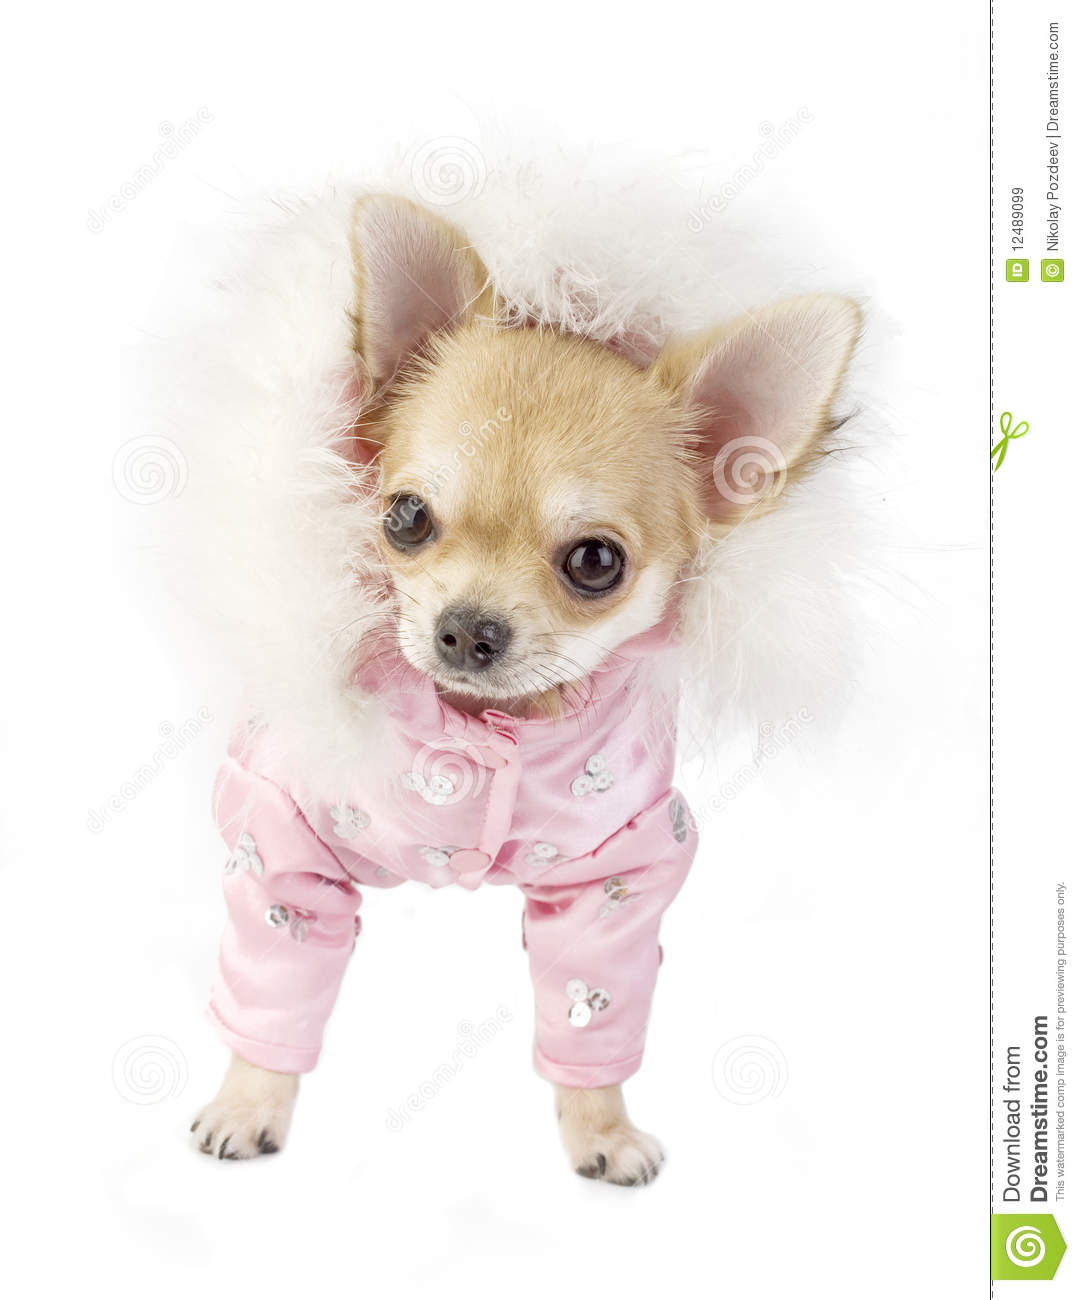 Cute Chihuahua Puppy Glamorous Dressed Royalty Free Stock Images